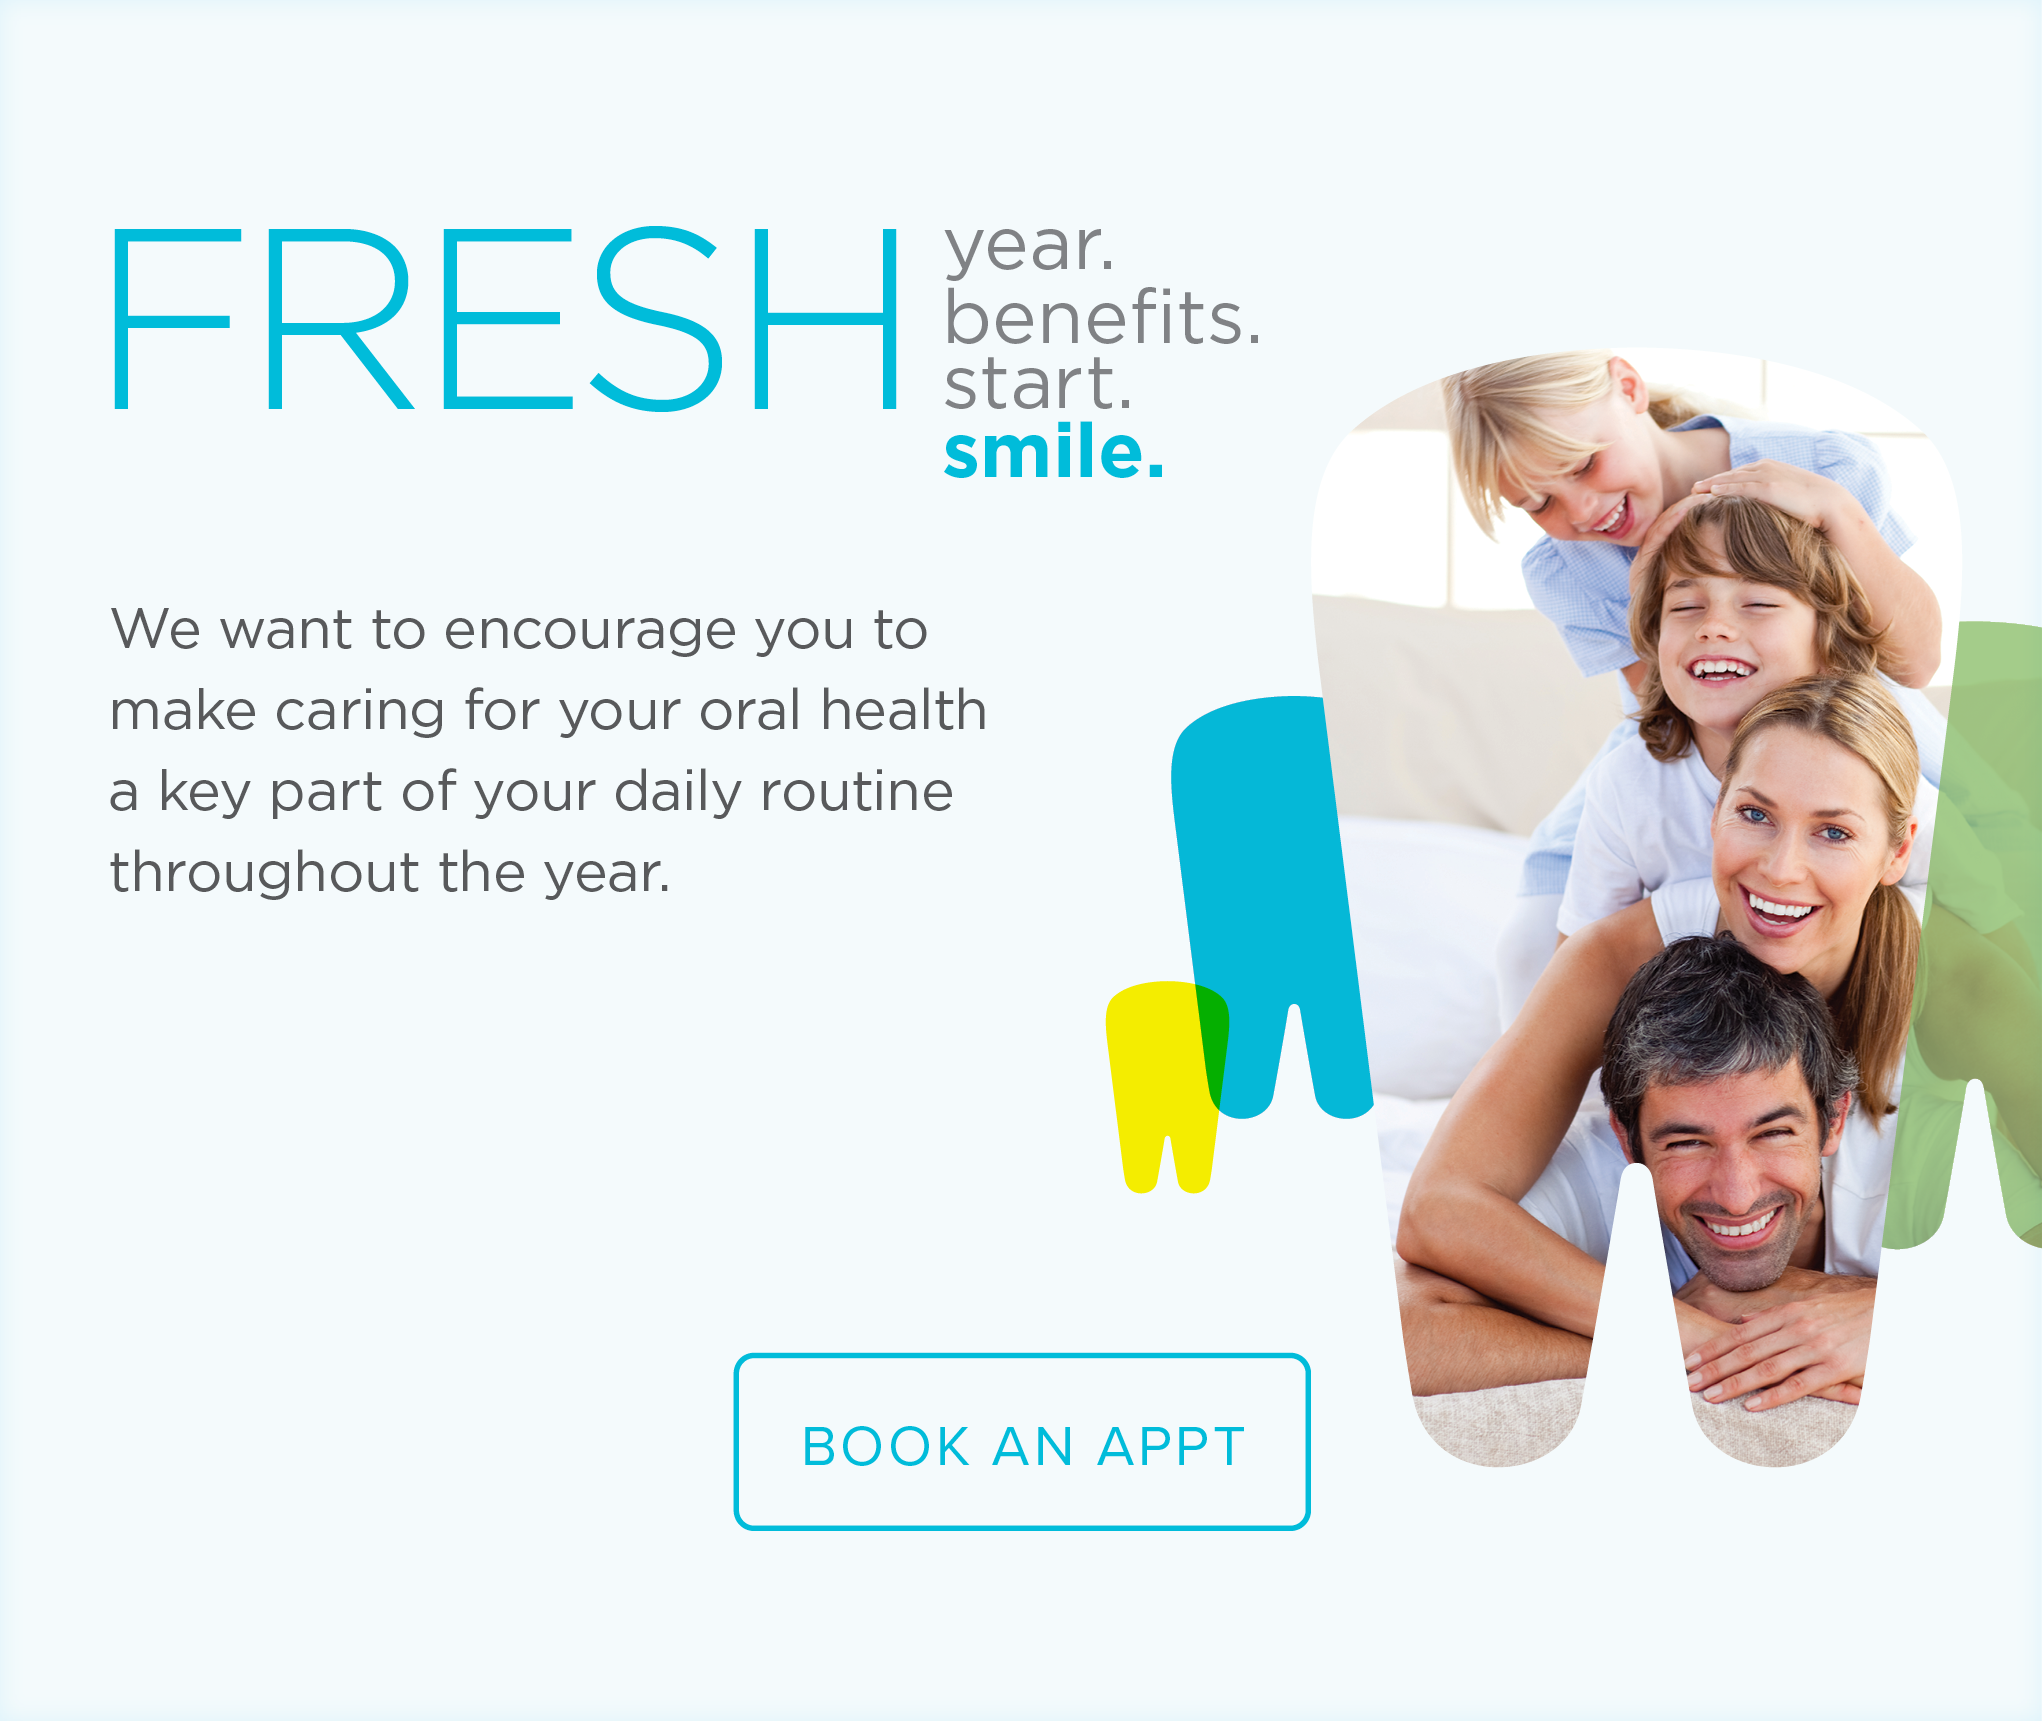 Greeley Modern Dentistry and Orthodontics - Make the Most of Your Benefits